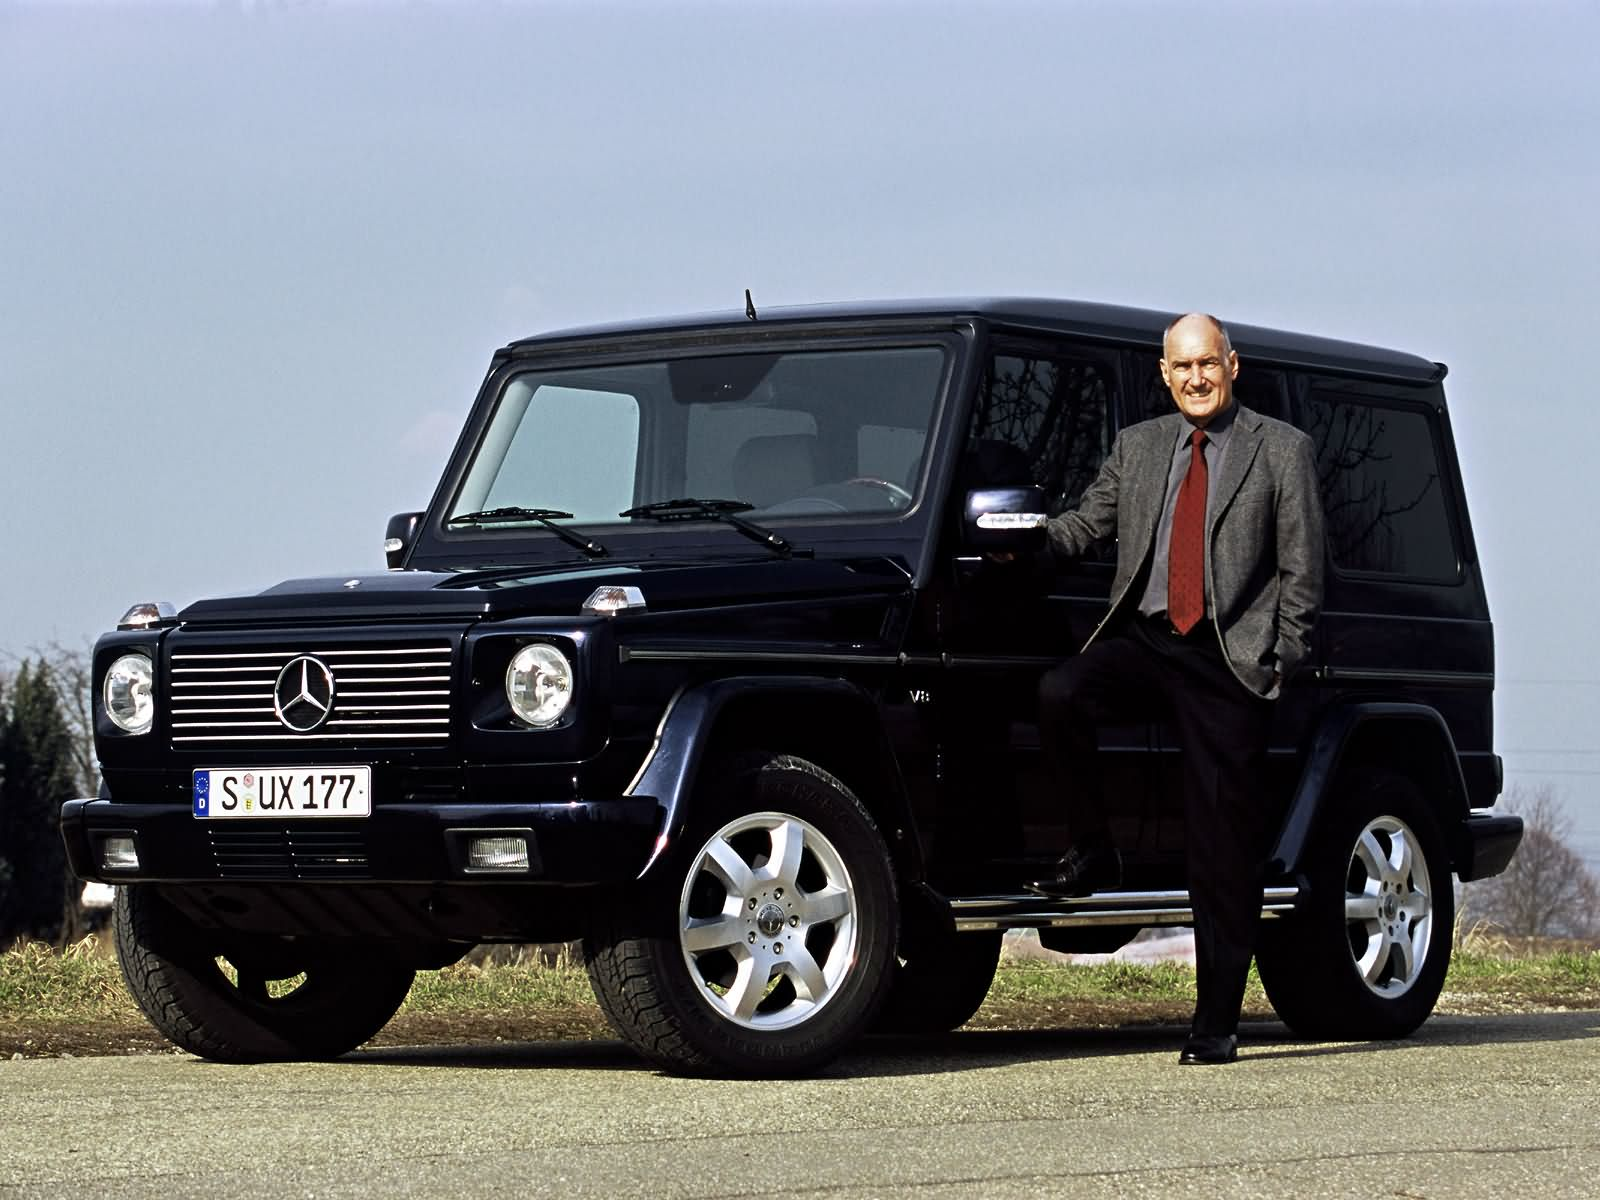 mercedes benz g class amg picture 9827 mercedes benz photo gallery. Black Bedroom Furniture Sets. Home Design Ideas